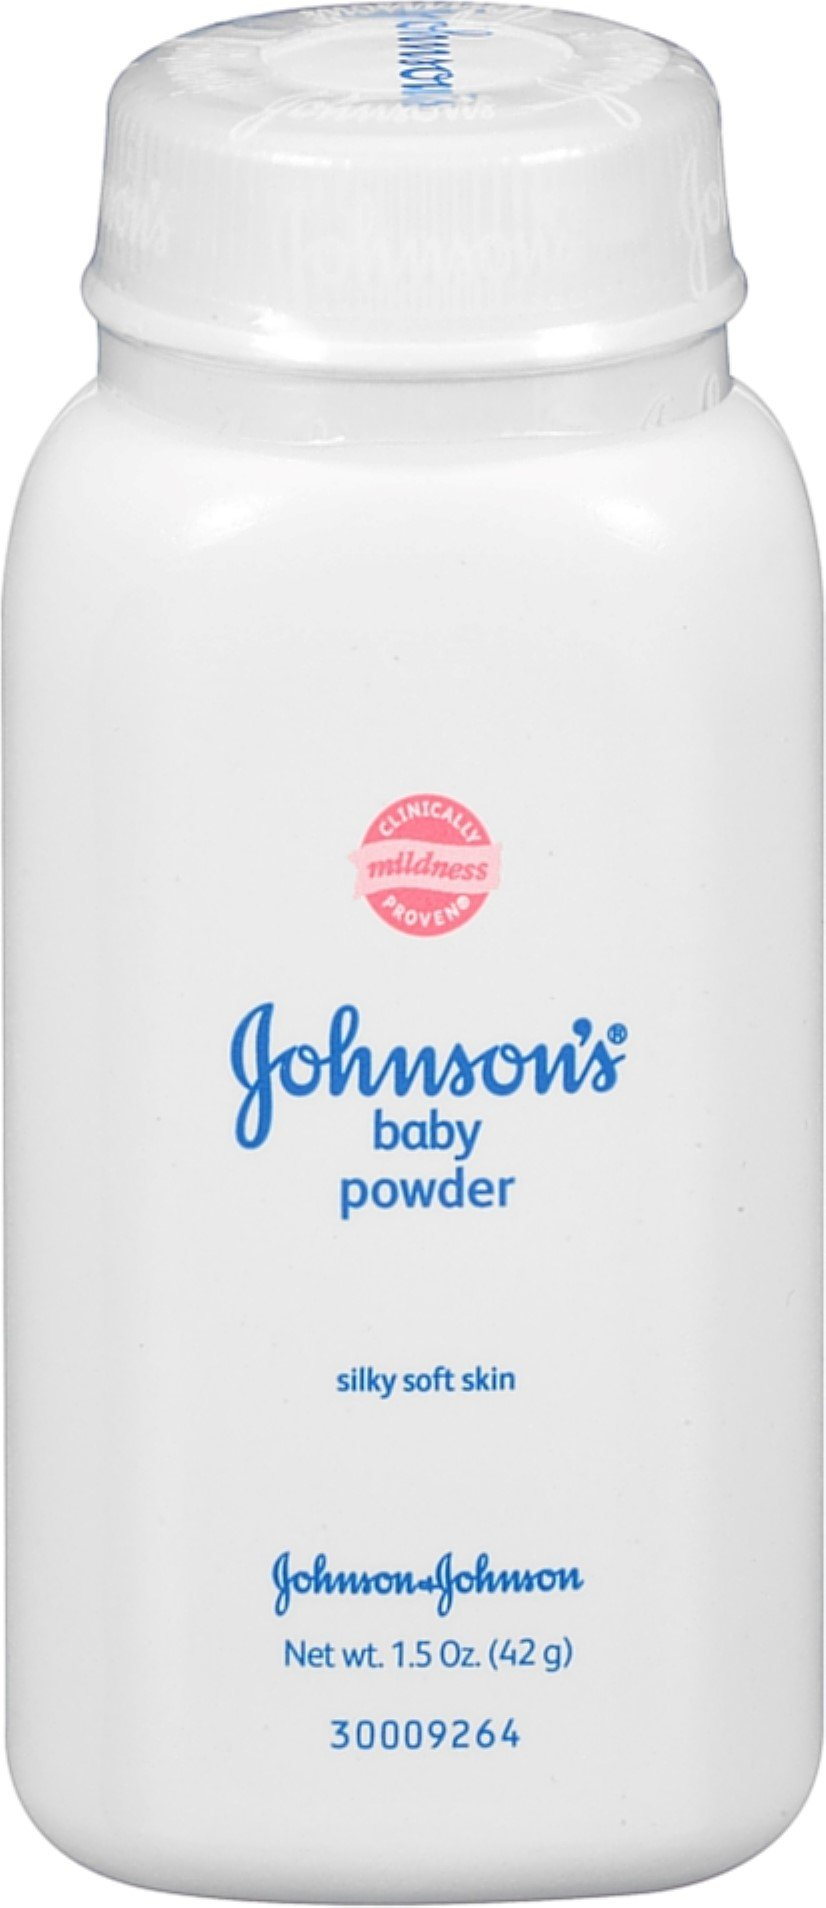 JOHNSON'S Baby Powder, Travel Size 1.50 oz (Pack of 5) by Johnson's